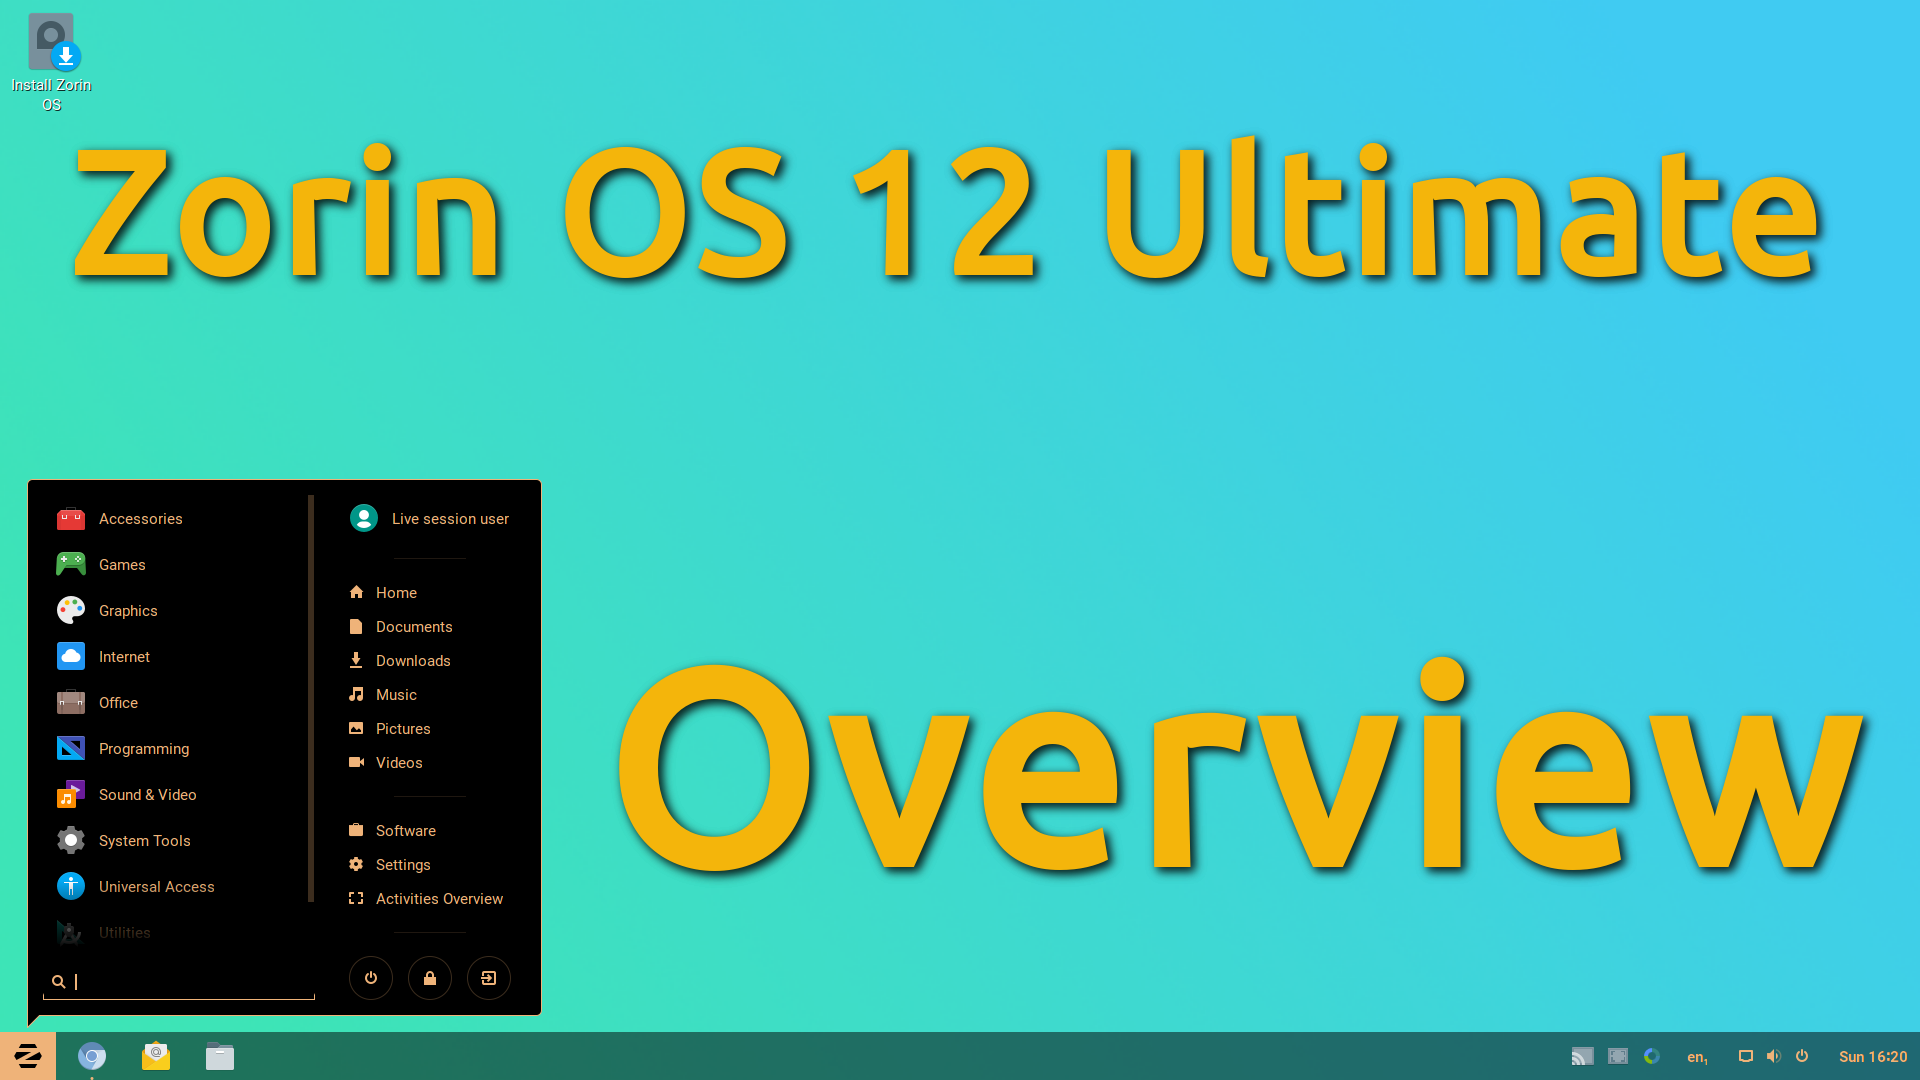 Zorin OS 12 Ultimate – Overview